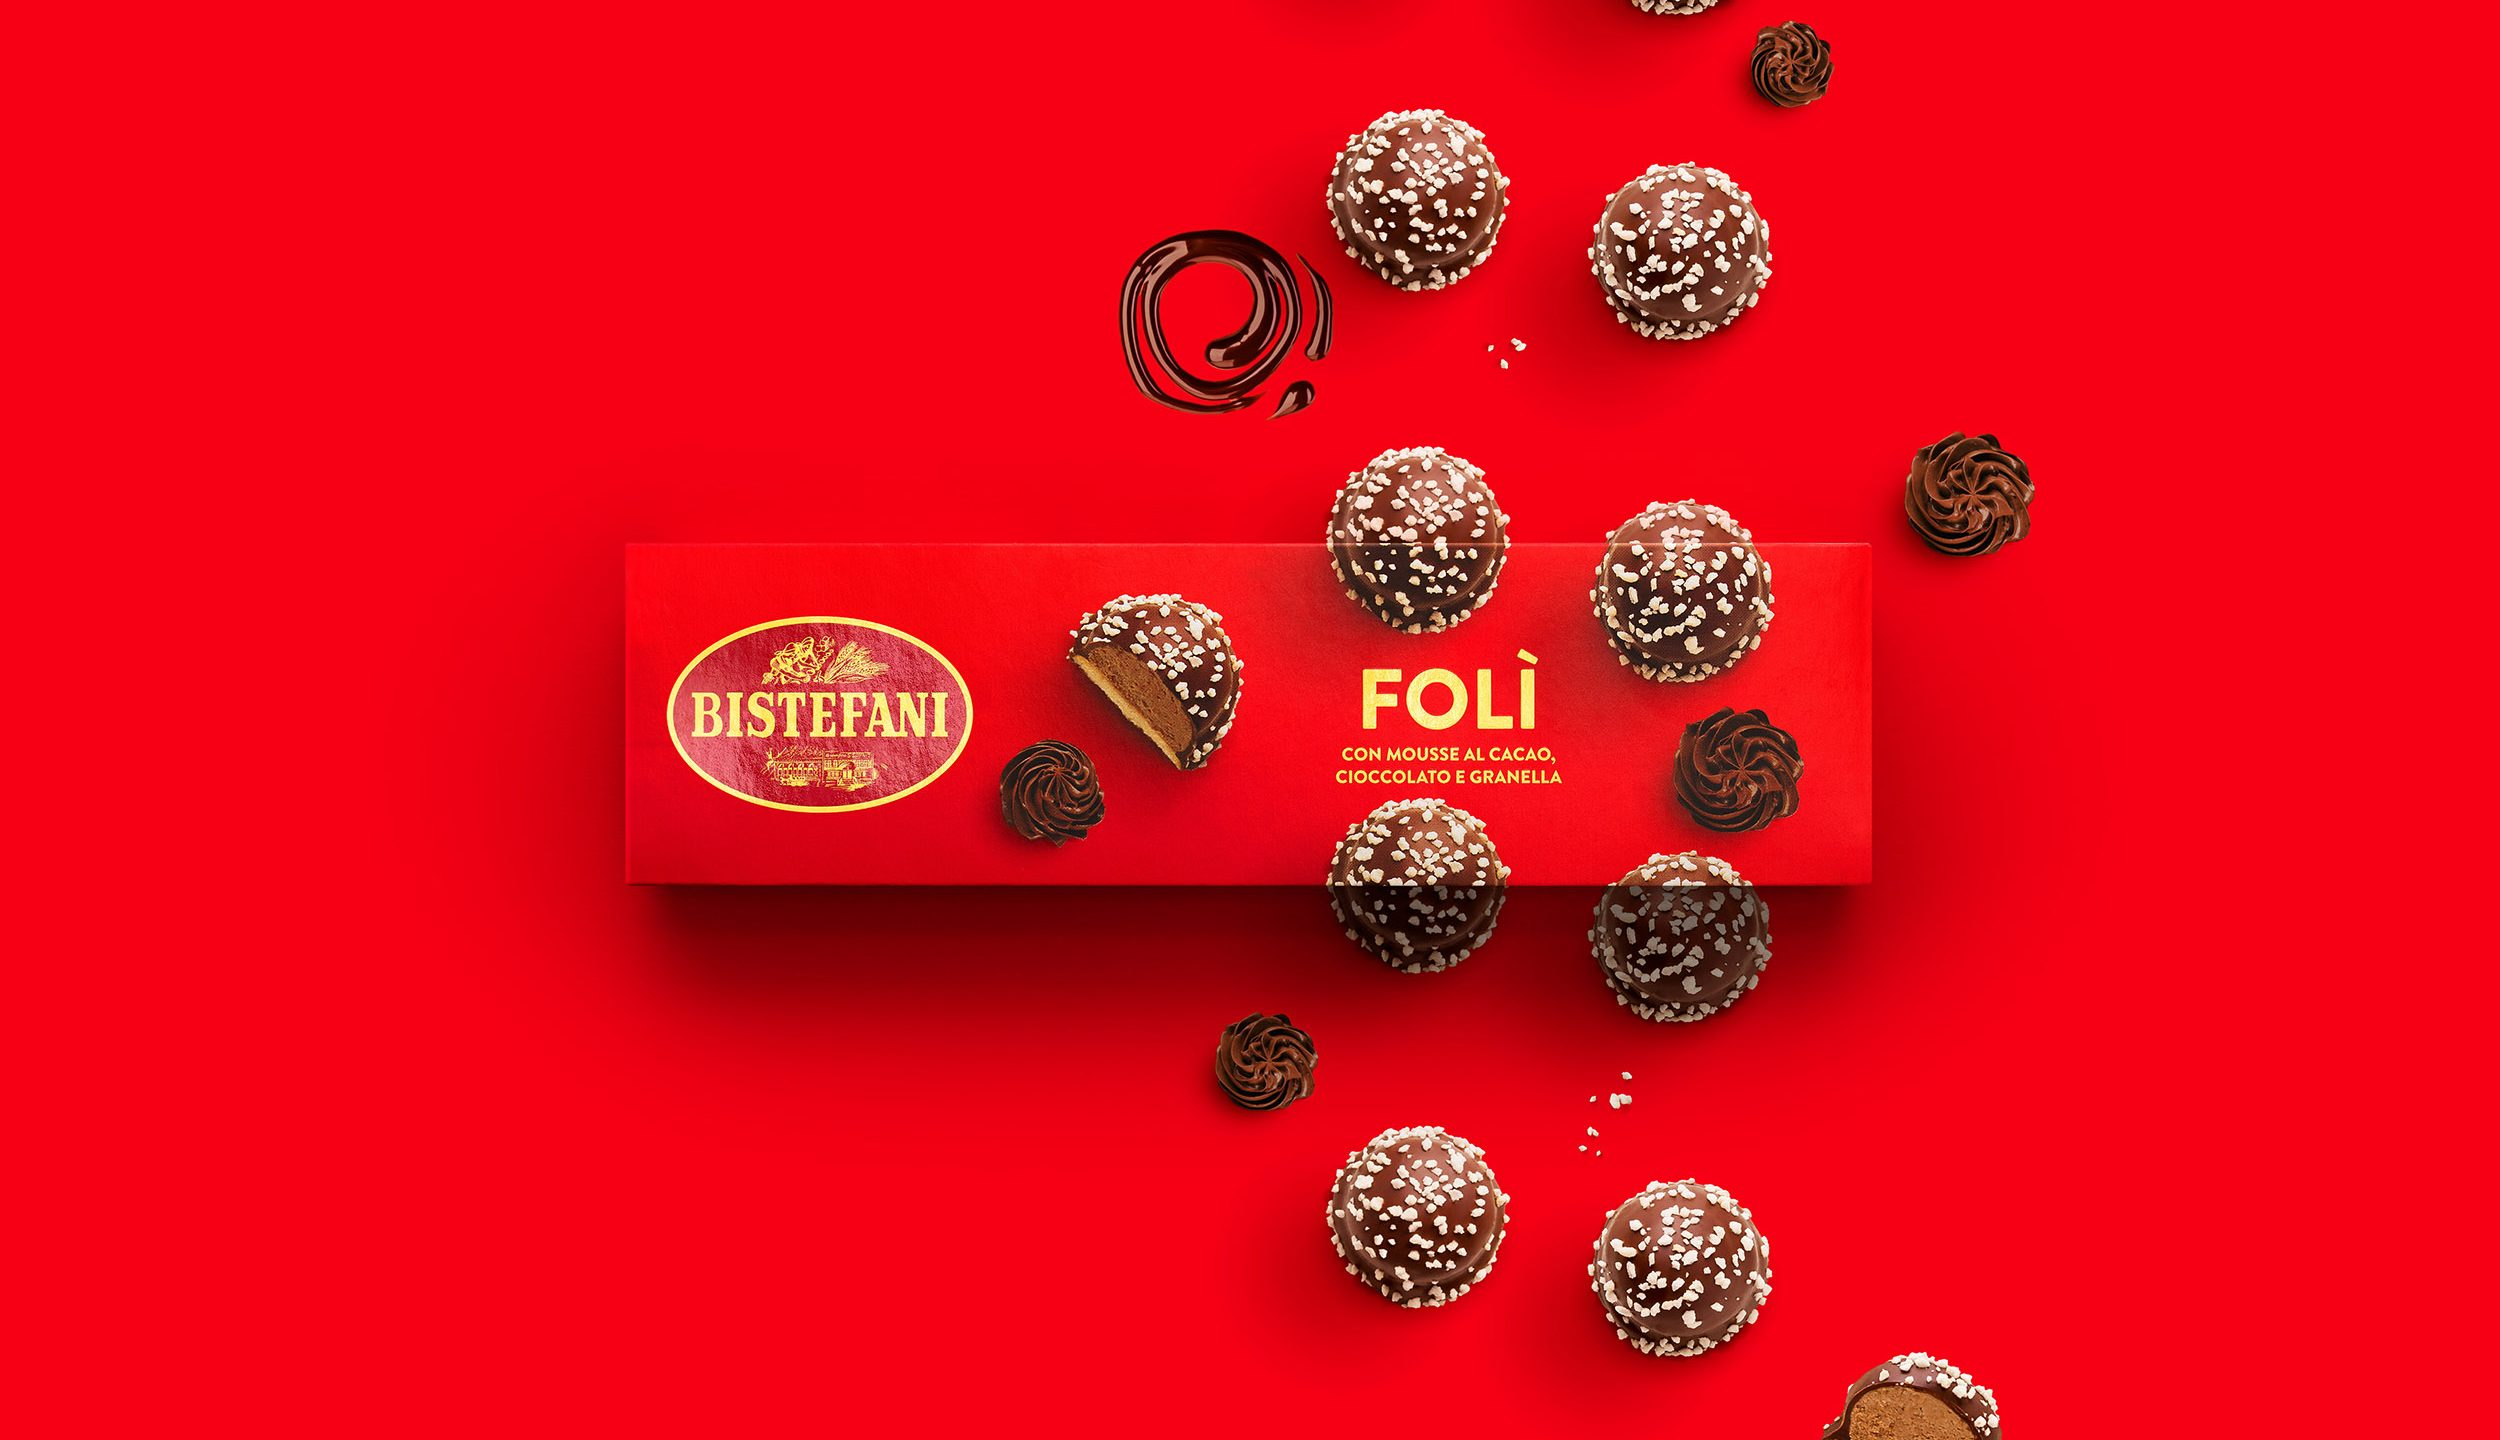 Bistefani Pasticceria Packaging Folì